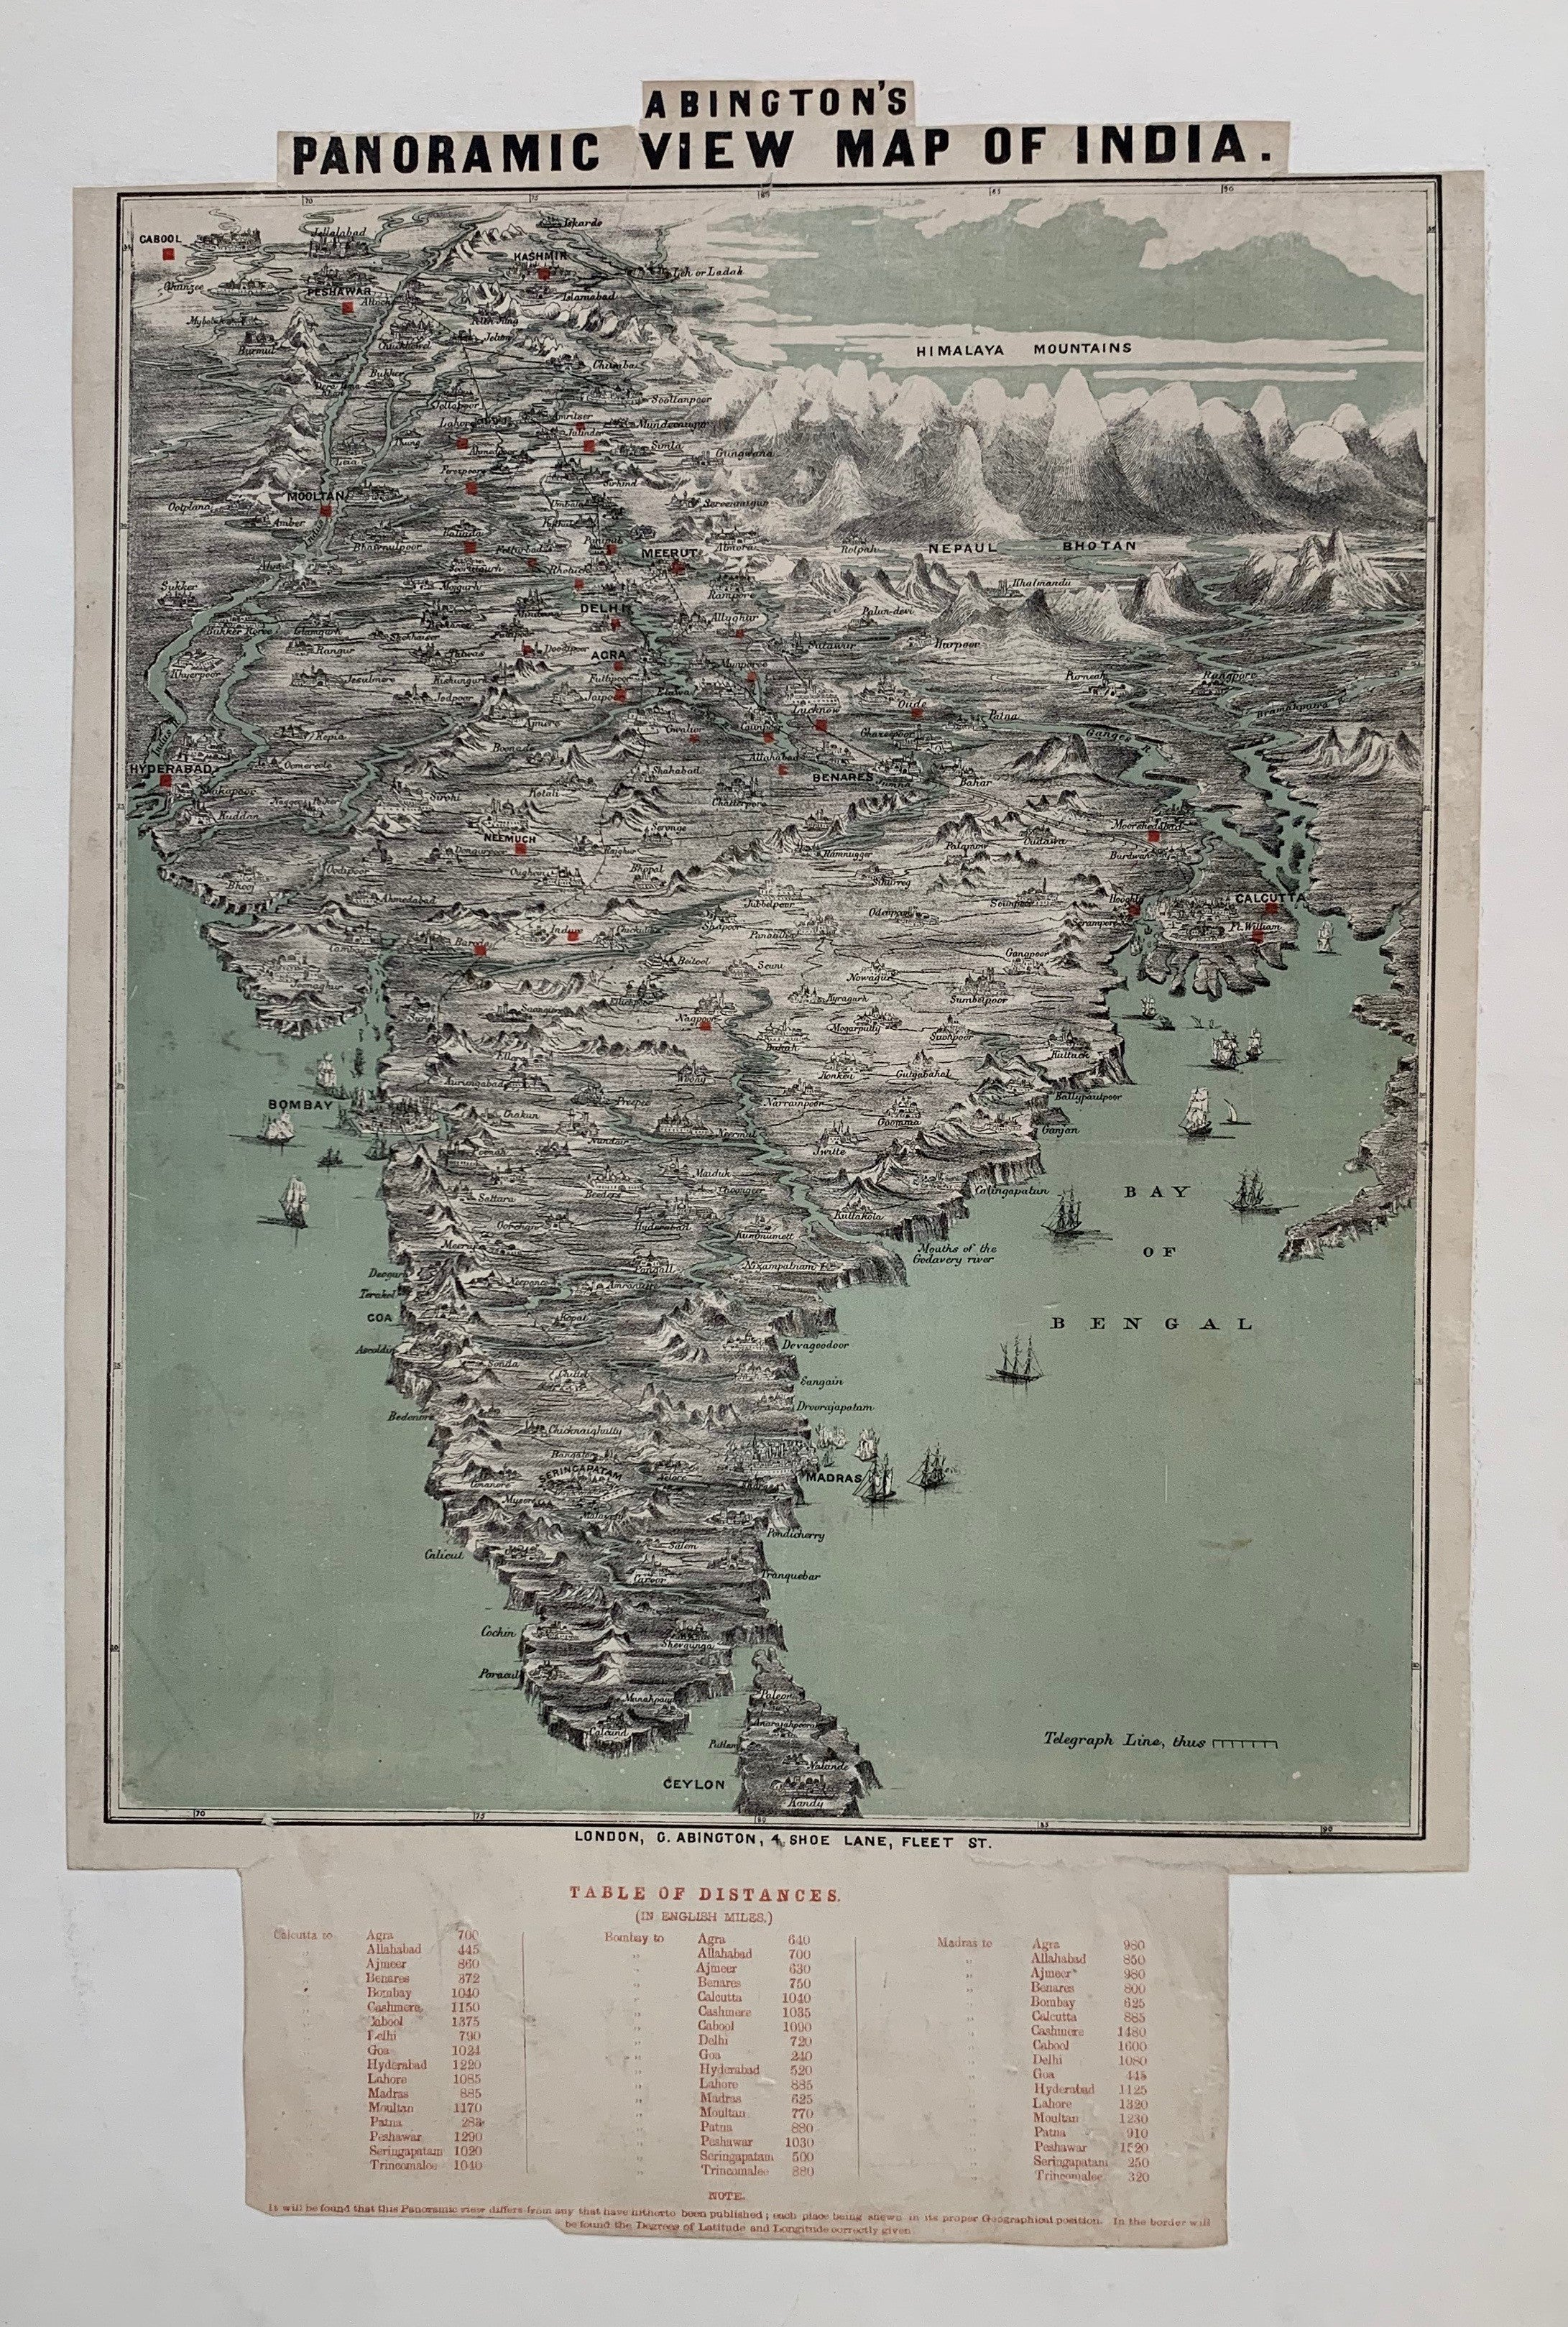 Abington's Panoramic View Map of India